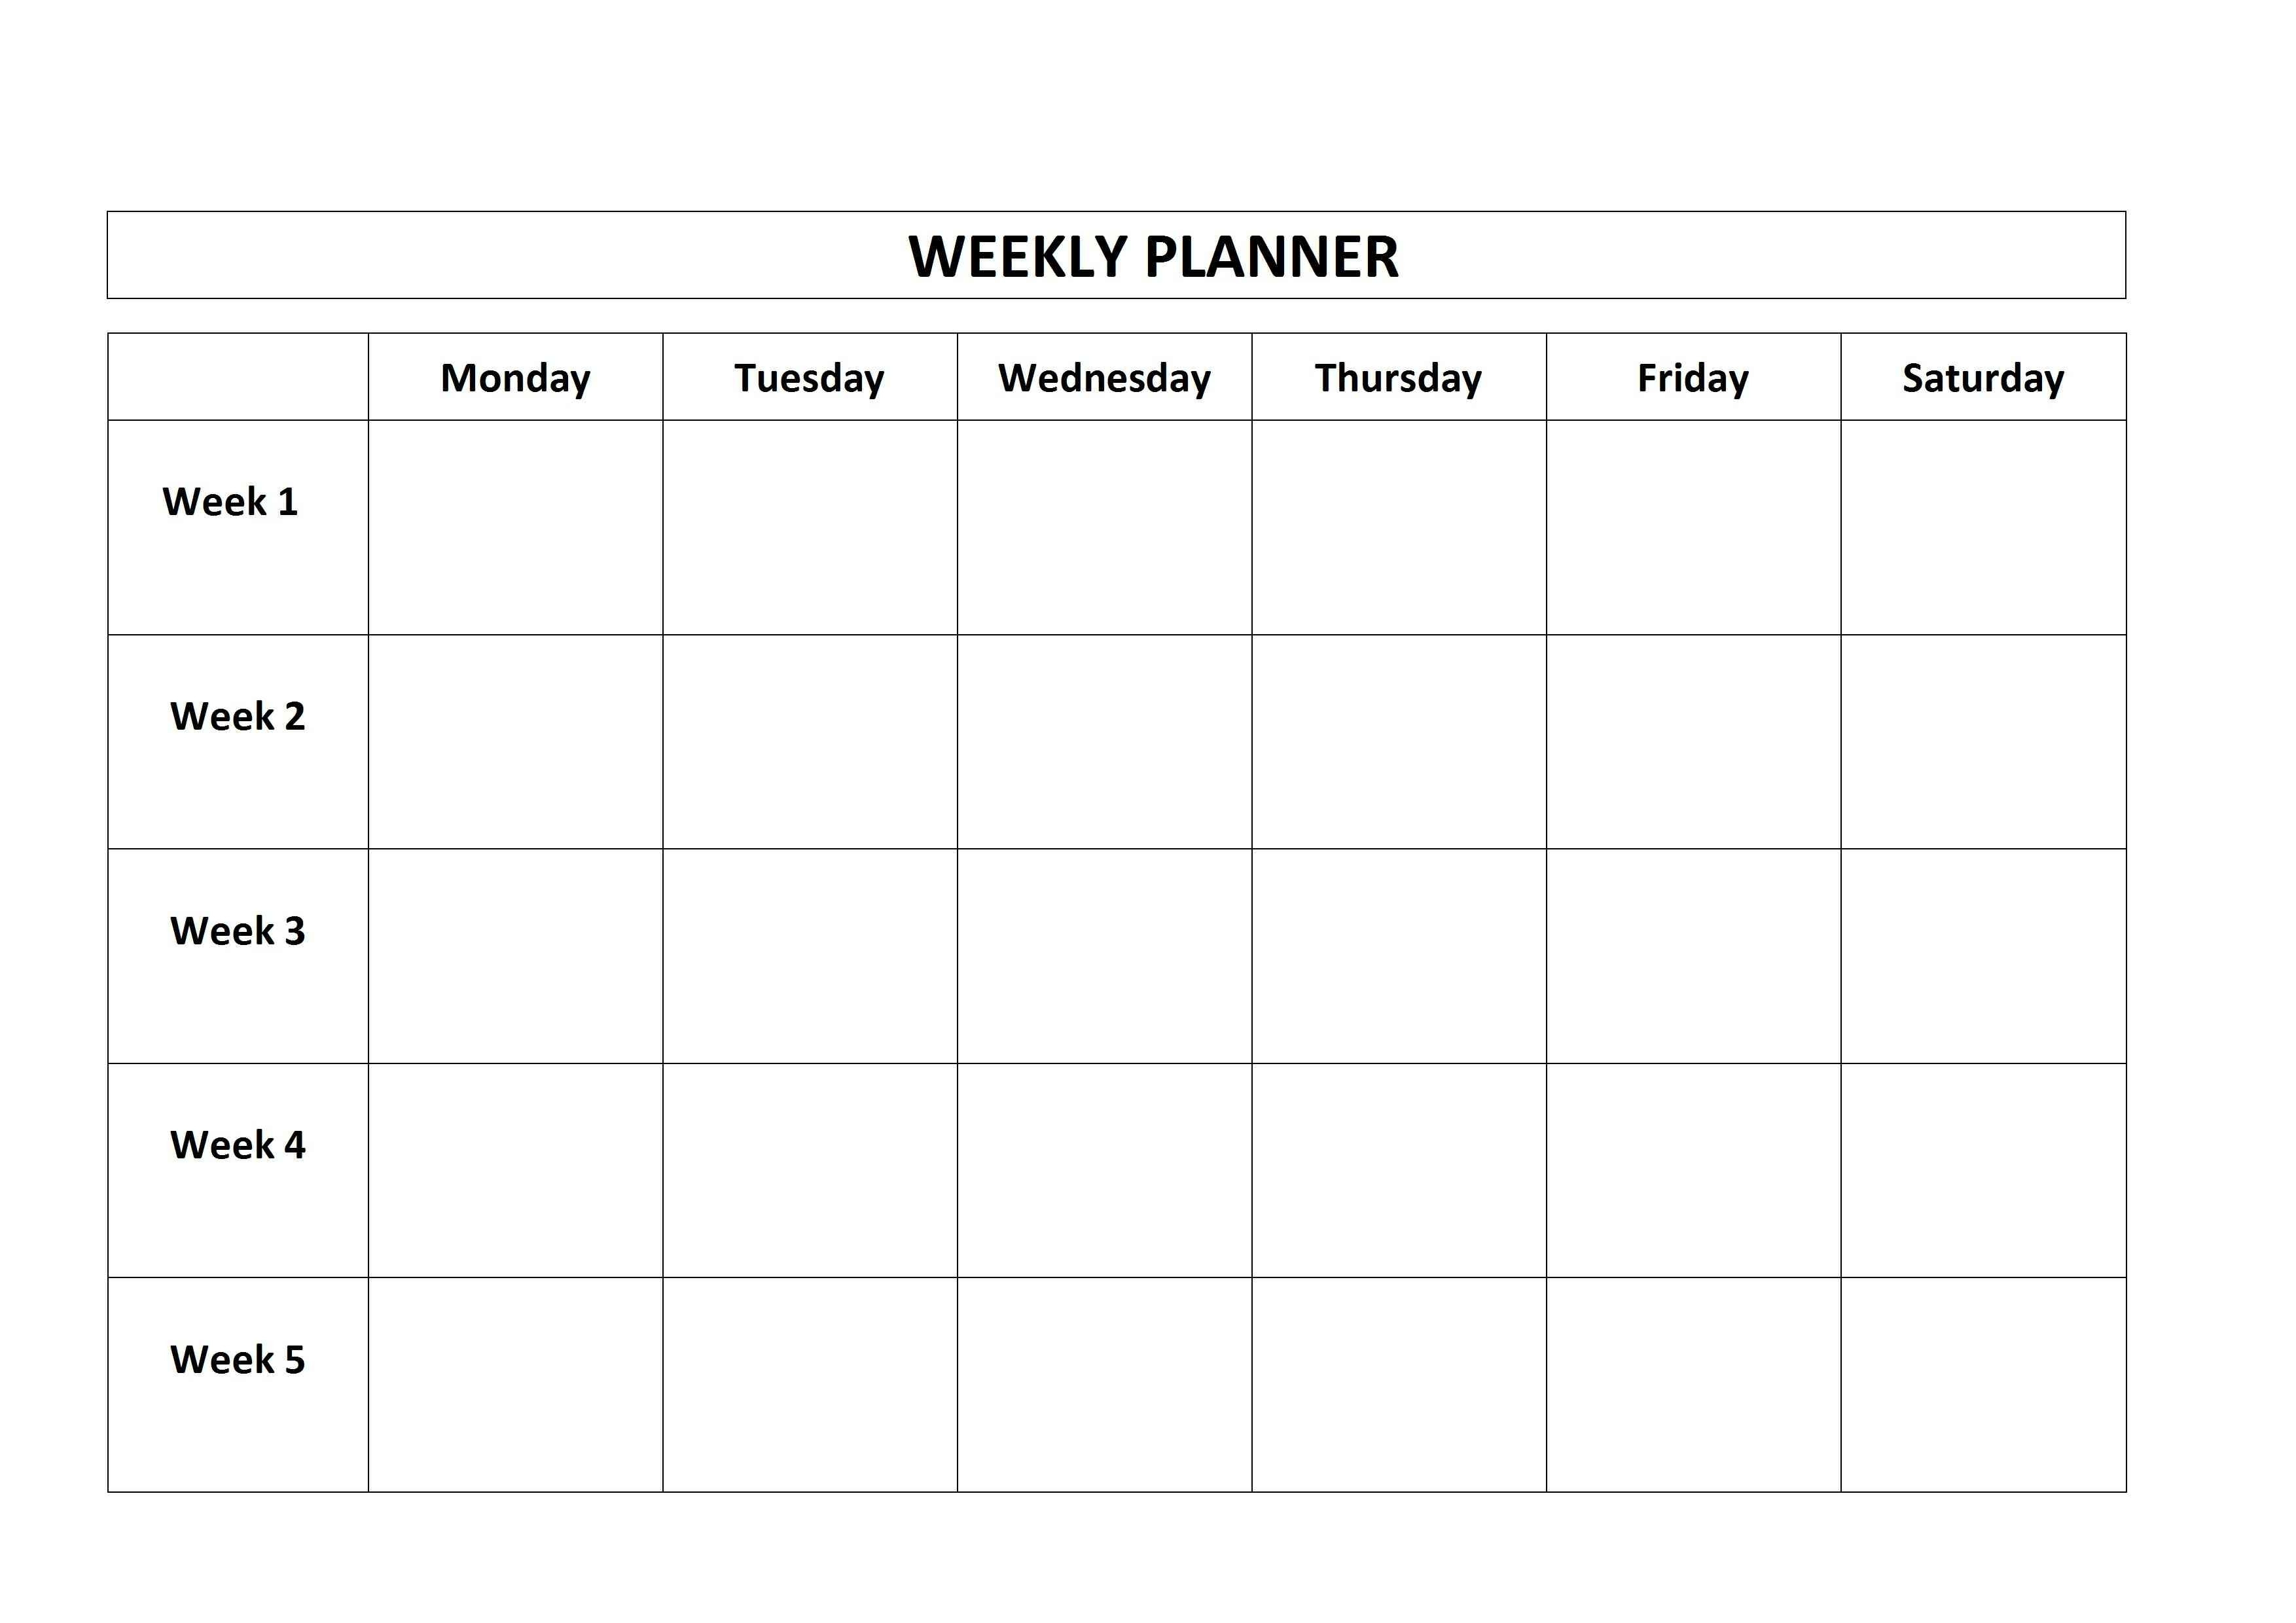 021 Two Week Calendar Template Monday To Friday Calendars regarding Printable Weekly Calendar